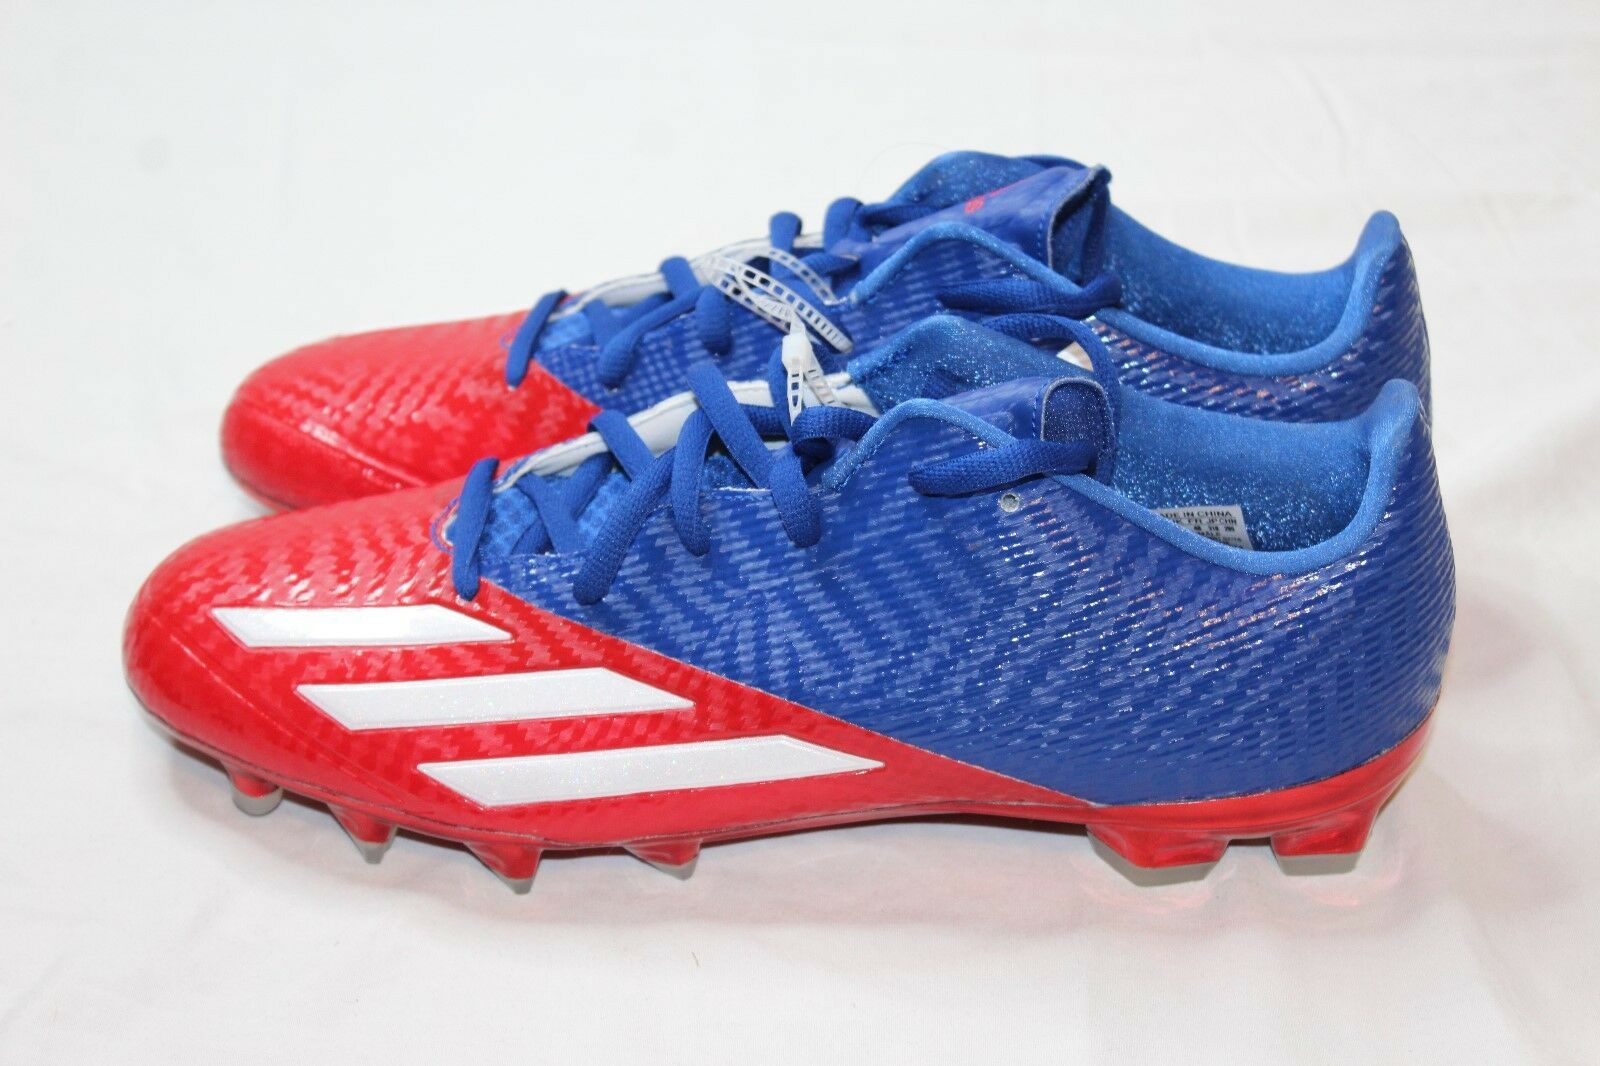 eccc241ef Adidas 5 Star 5.0 Red White   bluee Low Football Cleats AH1348 Size 13 New